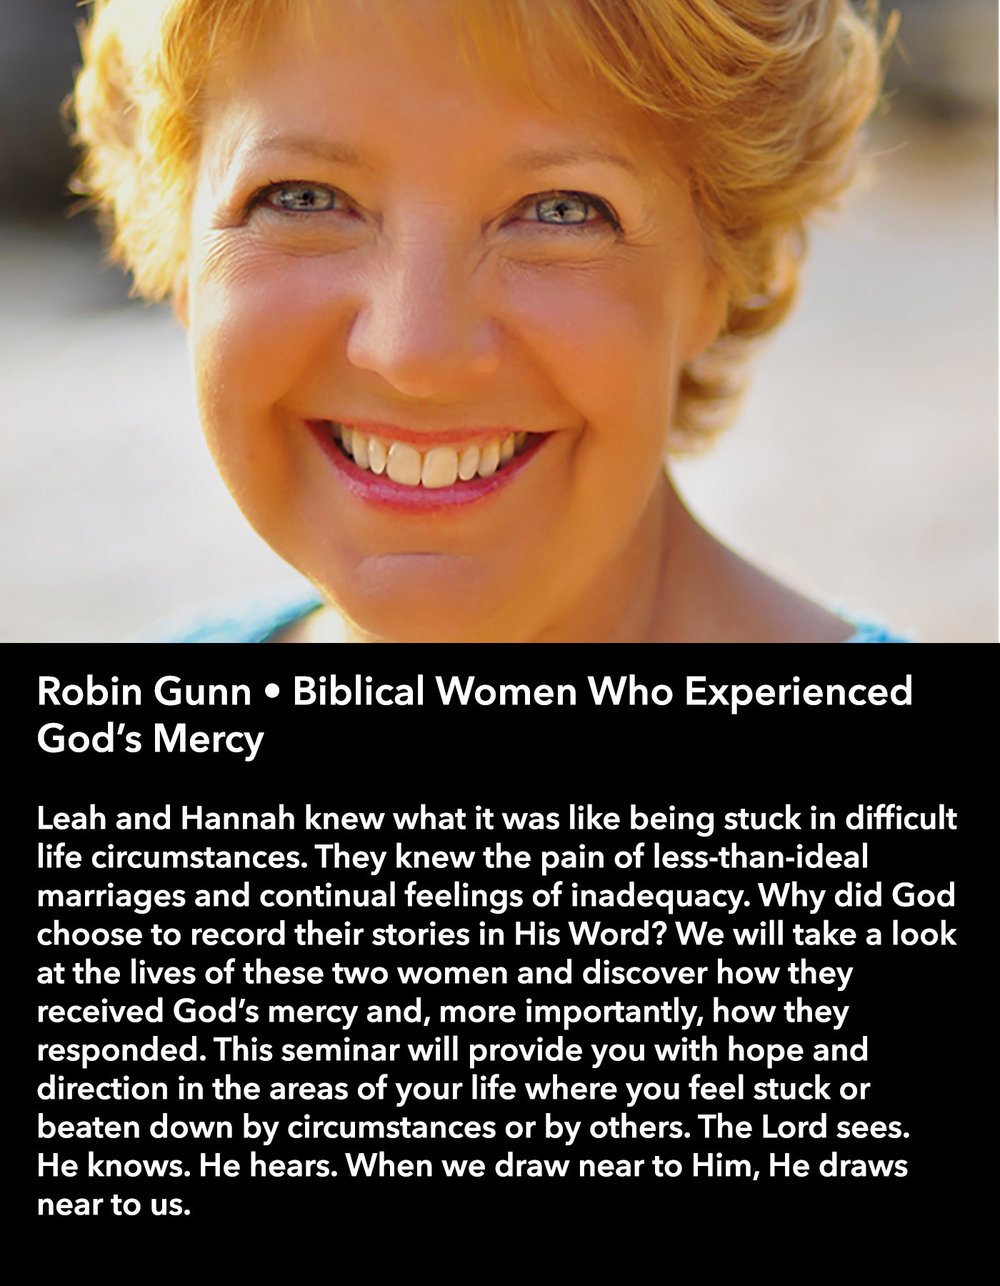 Robin Gunn • Biblical Women Who Experienced God's Mercy • Friday Morning, March 17 • 10:30 – 11:45 am